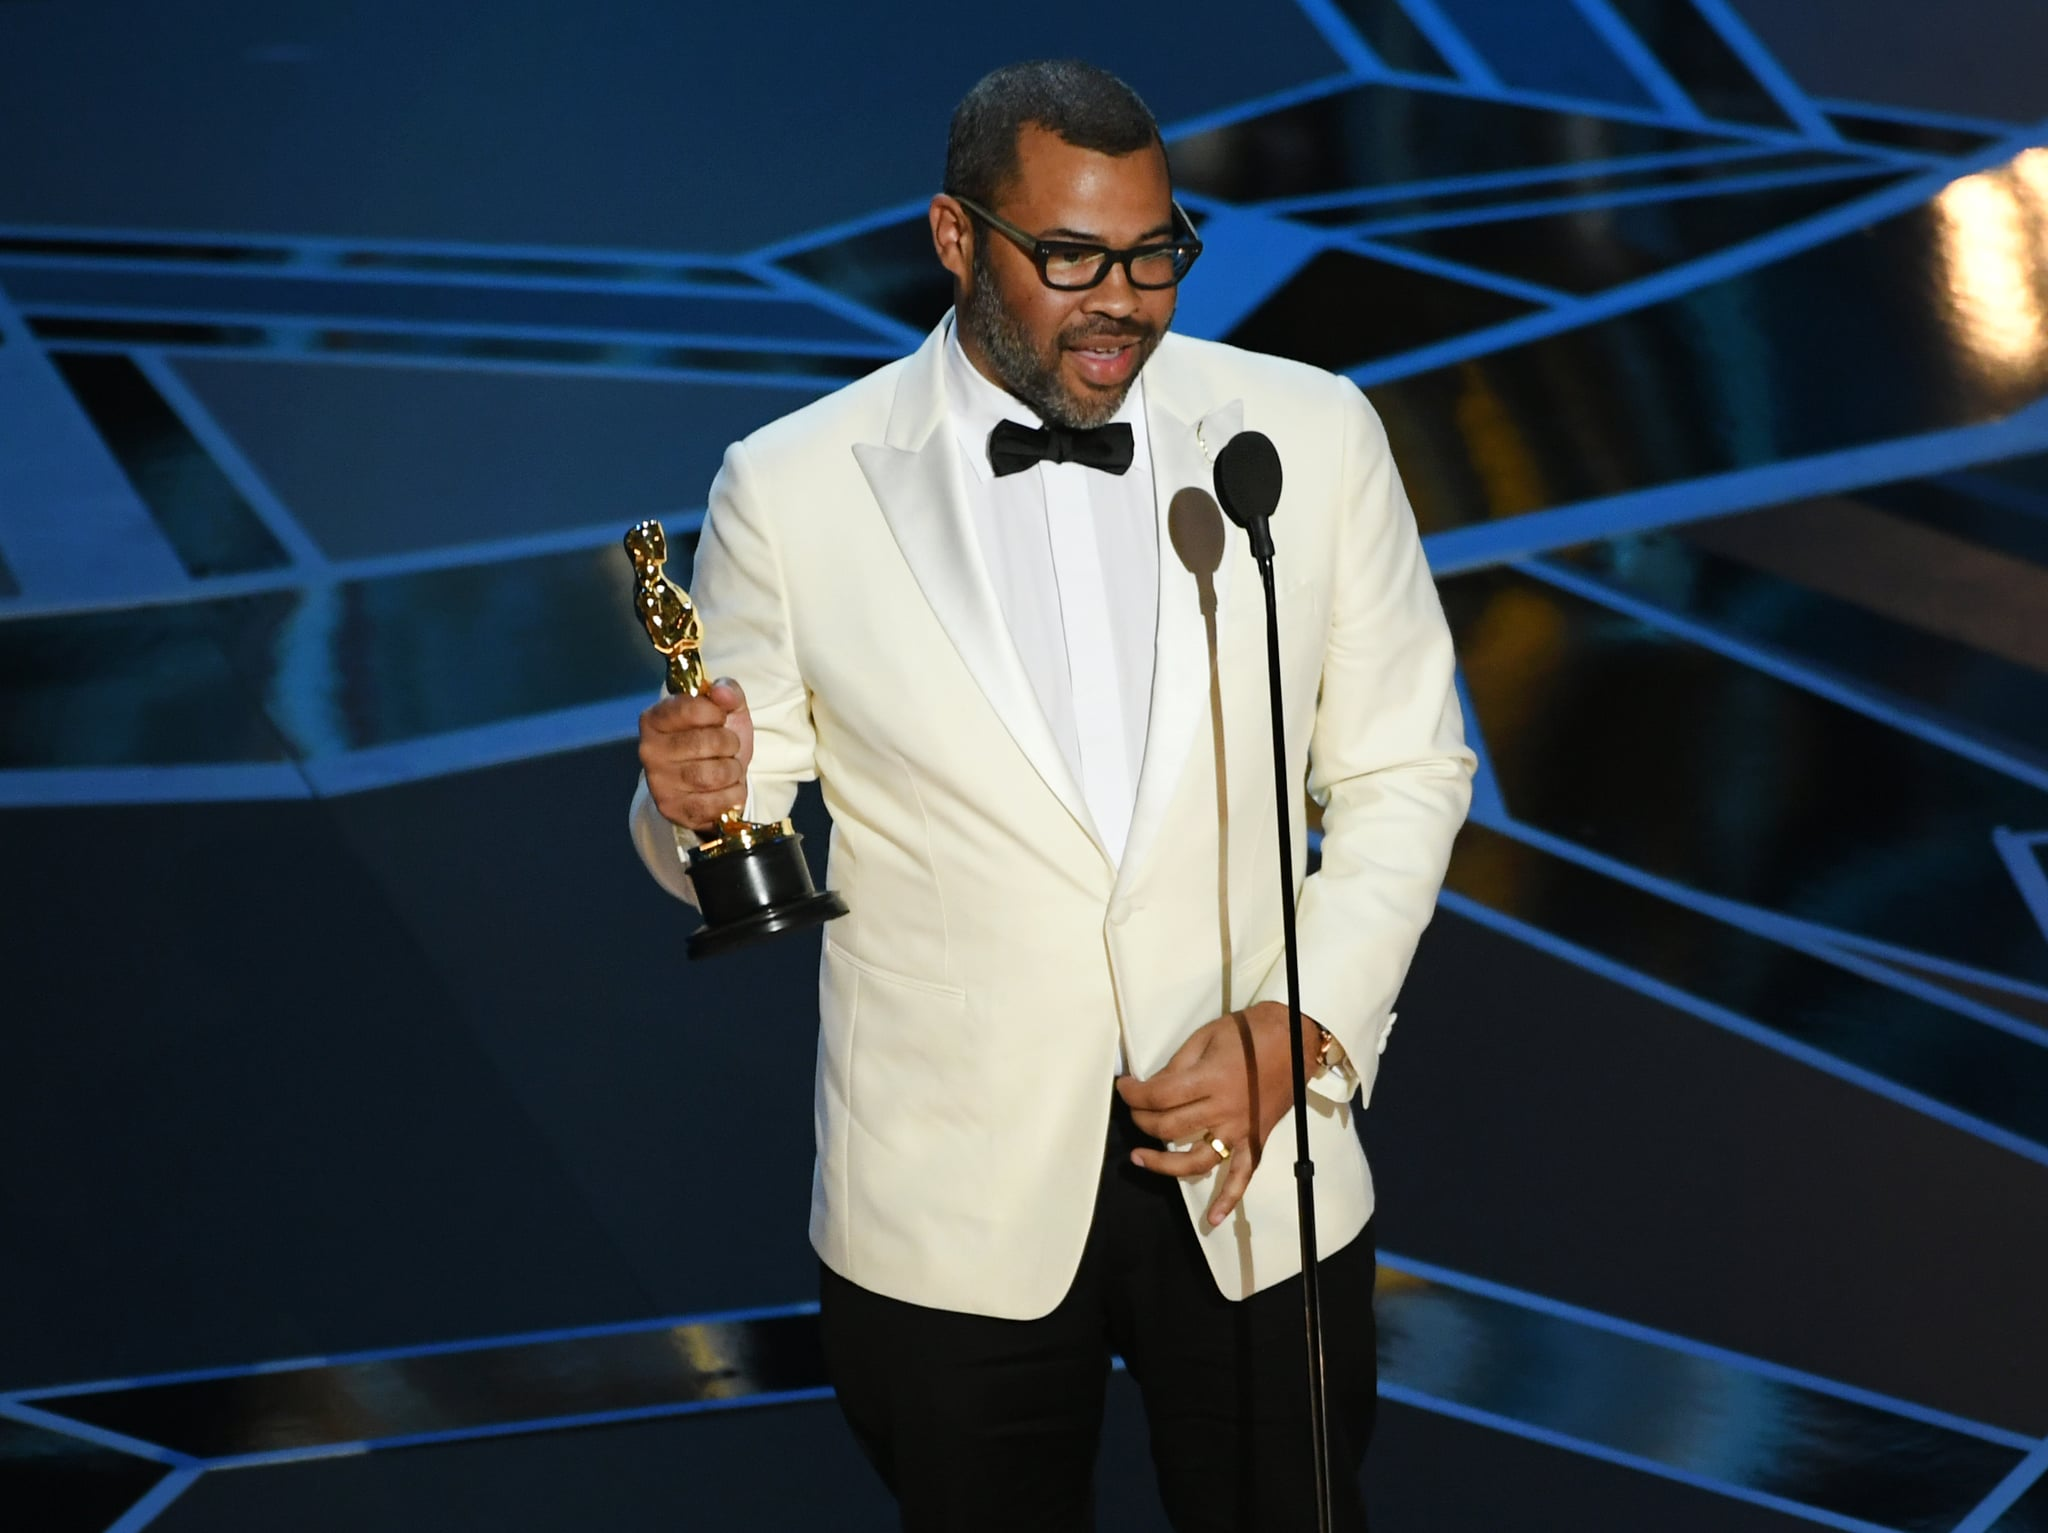 HOLLYWOOD, CA - MARCH 04:  Writer/director Jordan Peele accepts Best Original Screenplay for 'Get Out' onstage during the 90th Annual Academy Awards at the Dolby Theatre at Hollywood & Highland centre on March 4, 2018 in Hollywood, California.  (Photo by Kevin Winter/Getty Images)